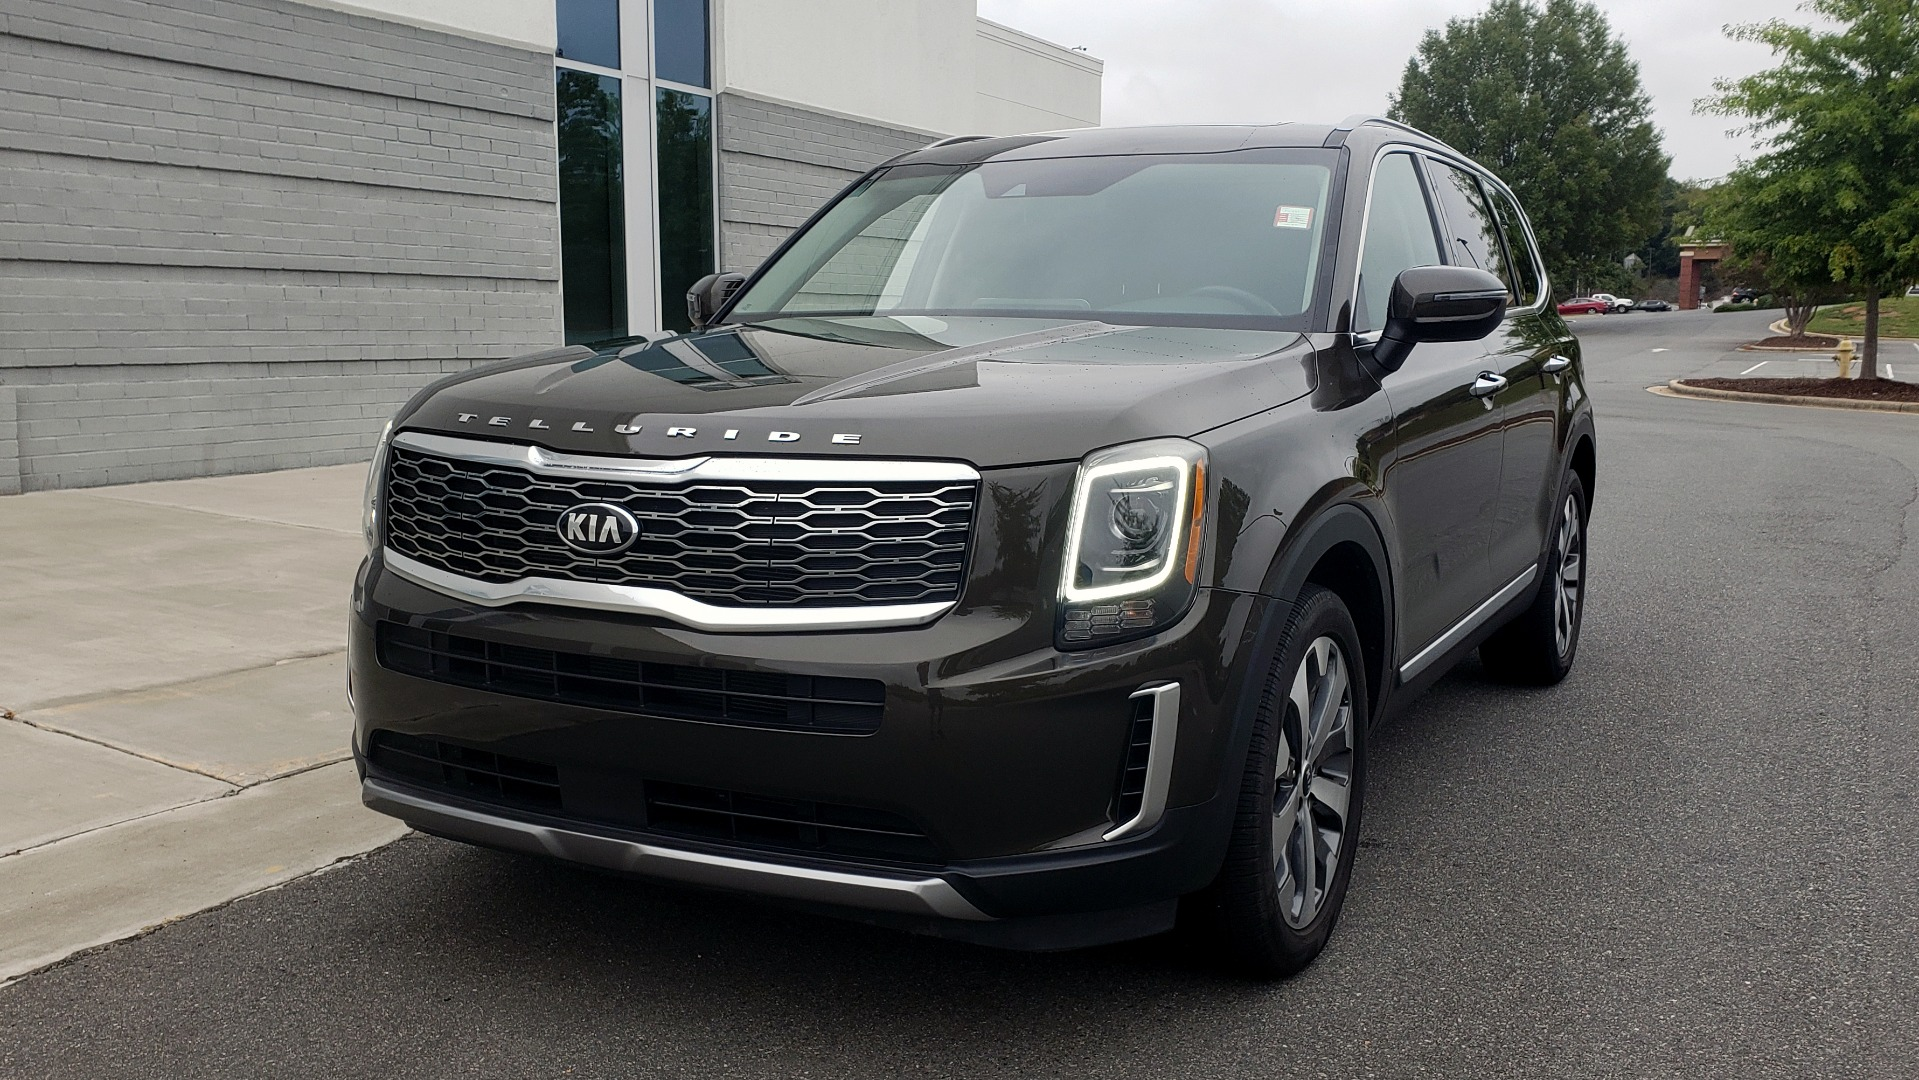 Used 2020 Kia TELLURIDE S 3.8L / FWD / 8-SPD AUTO / SUNROOF / REARVIEW / 20INCH WHEELS for sale $41,595 at Formula Imports in Charlotte NC 28227 2